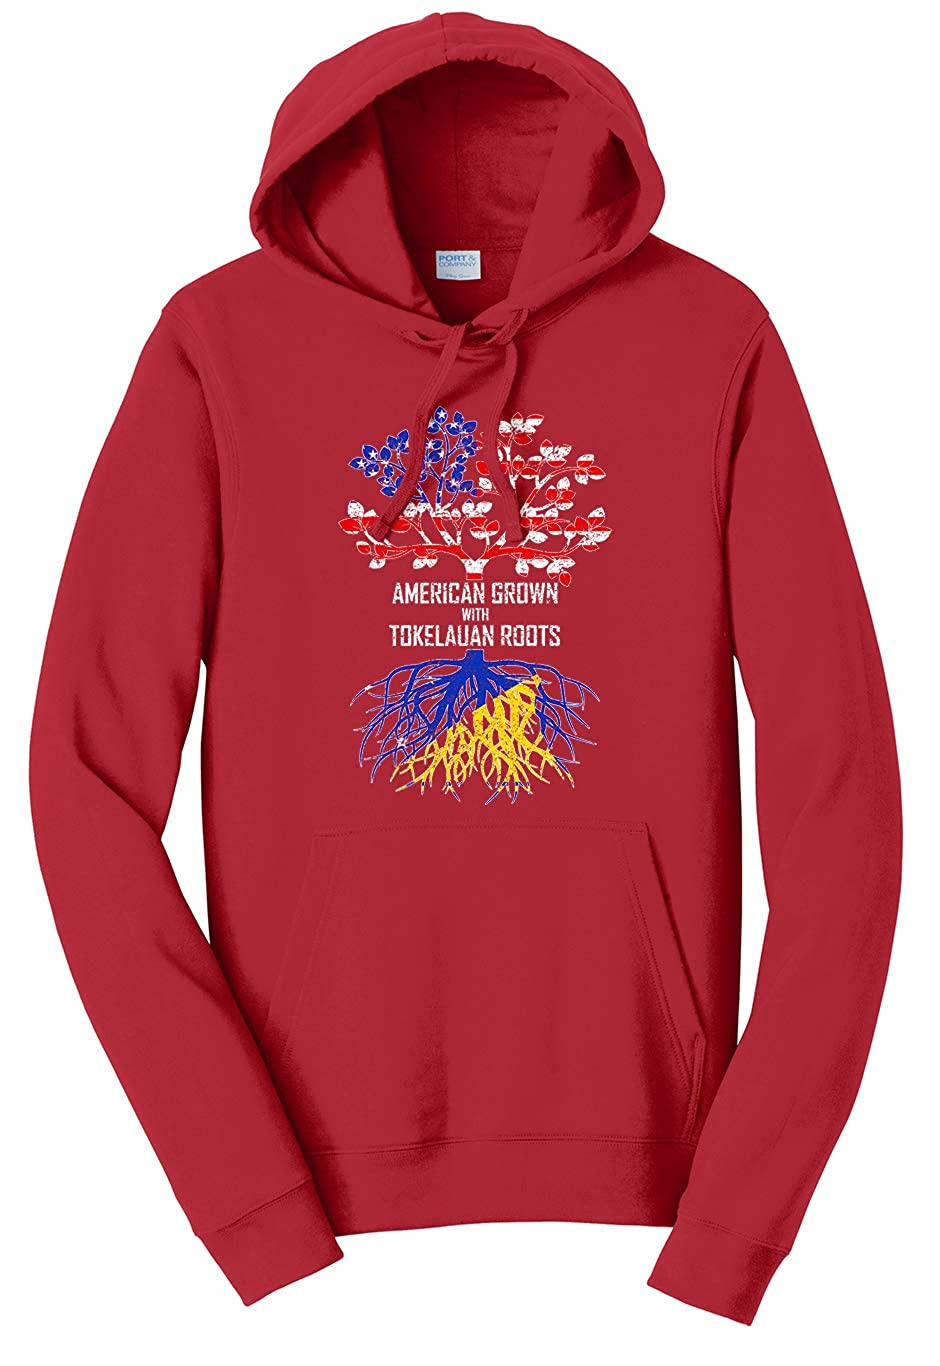 Tenacitee Unisex American Grown with Tokelauan Roots Sweatshirt